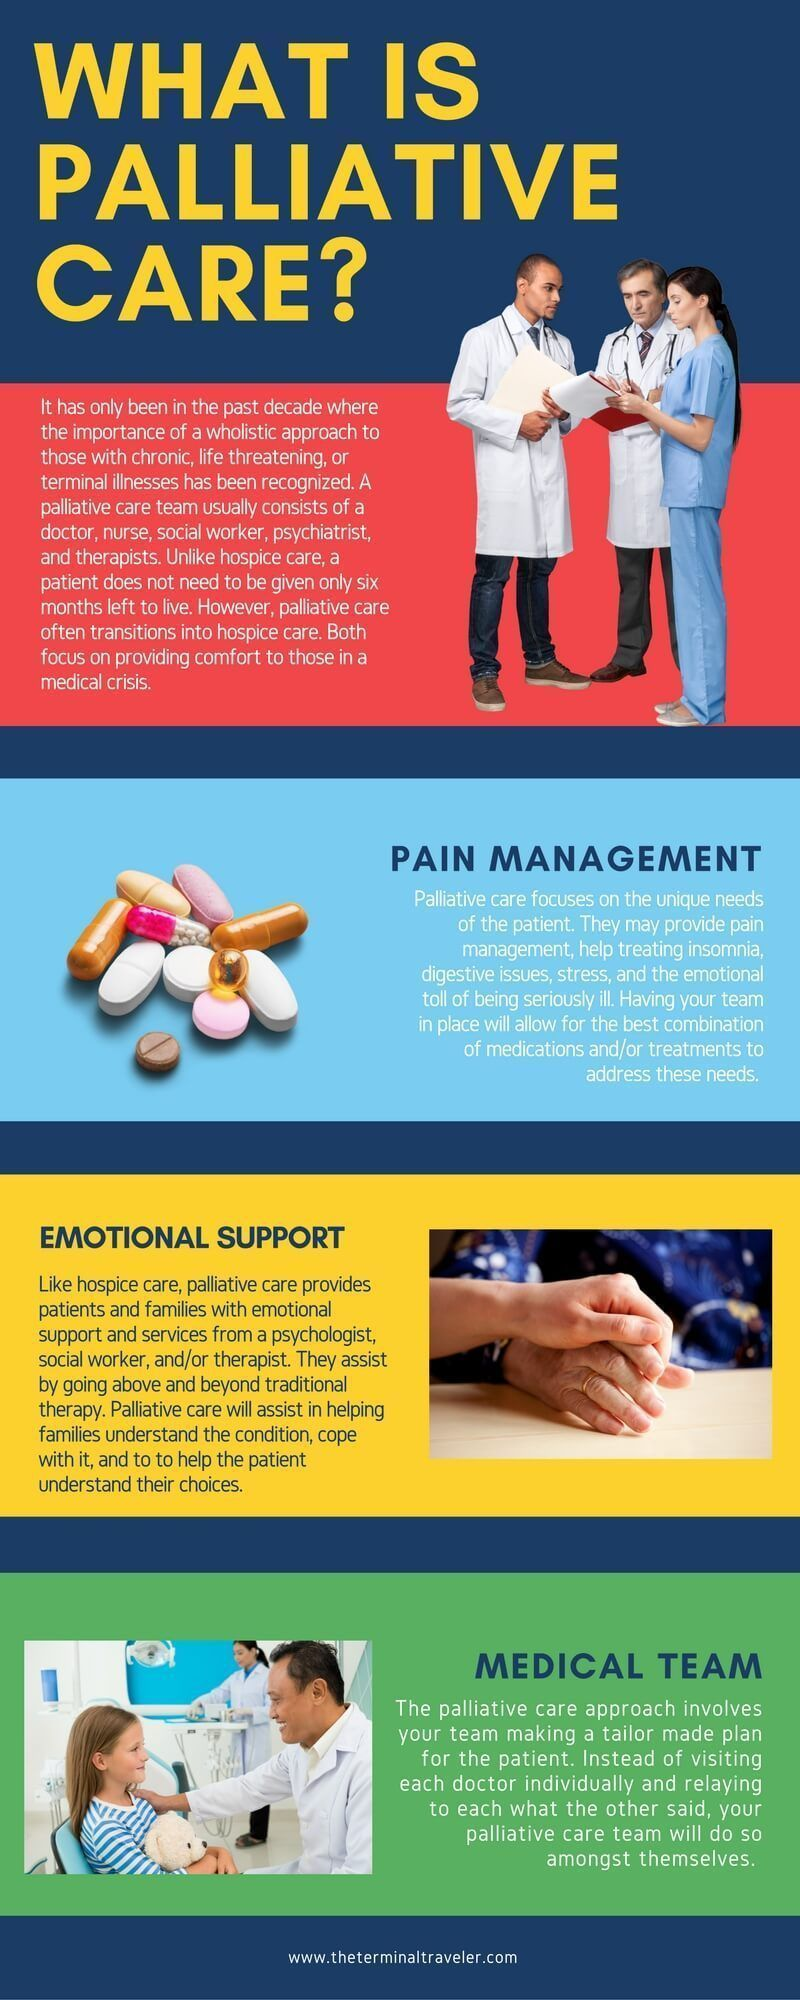 Infographic describing what palliative care is